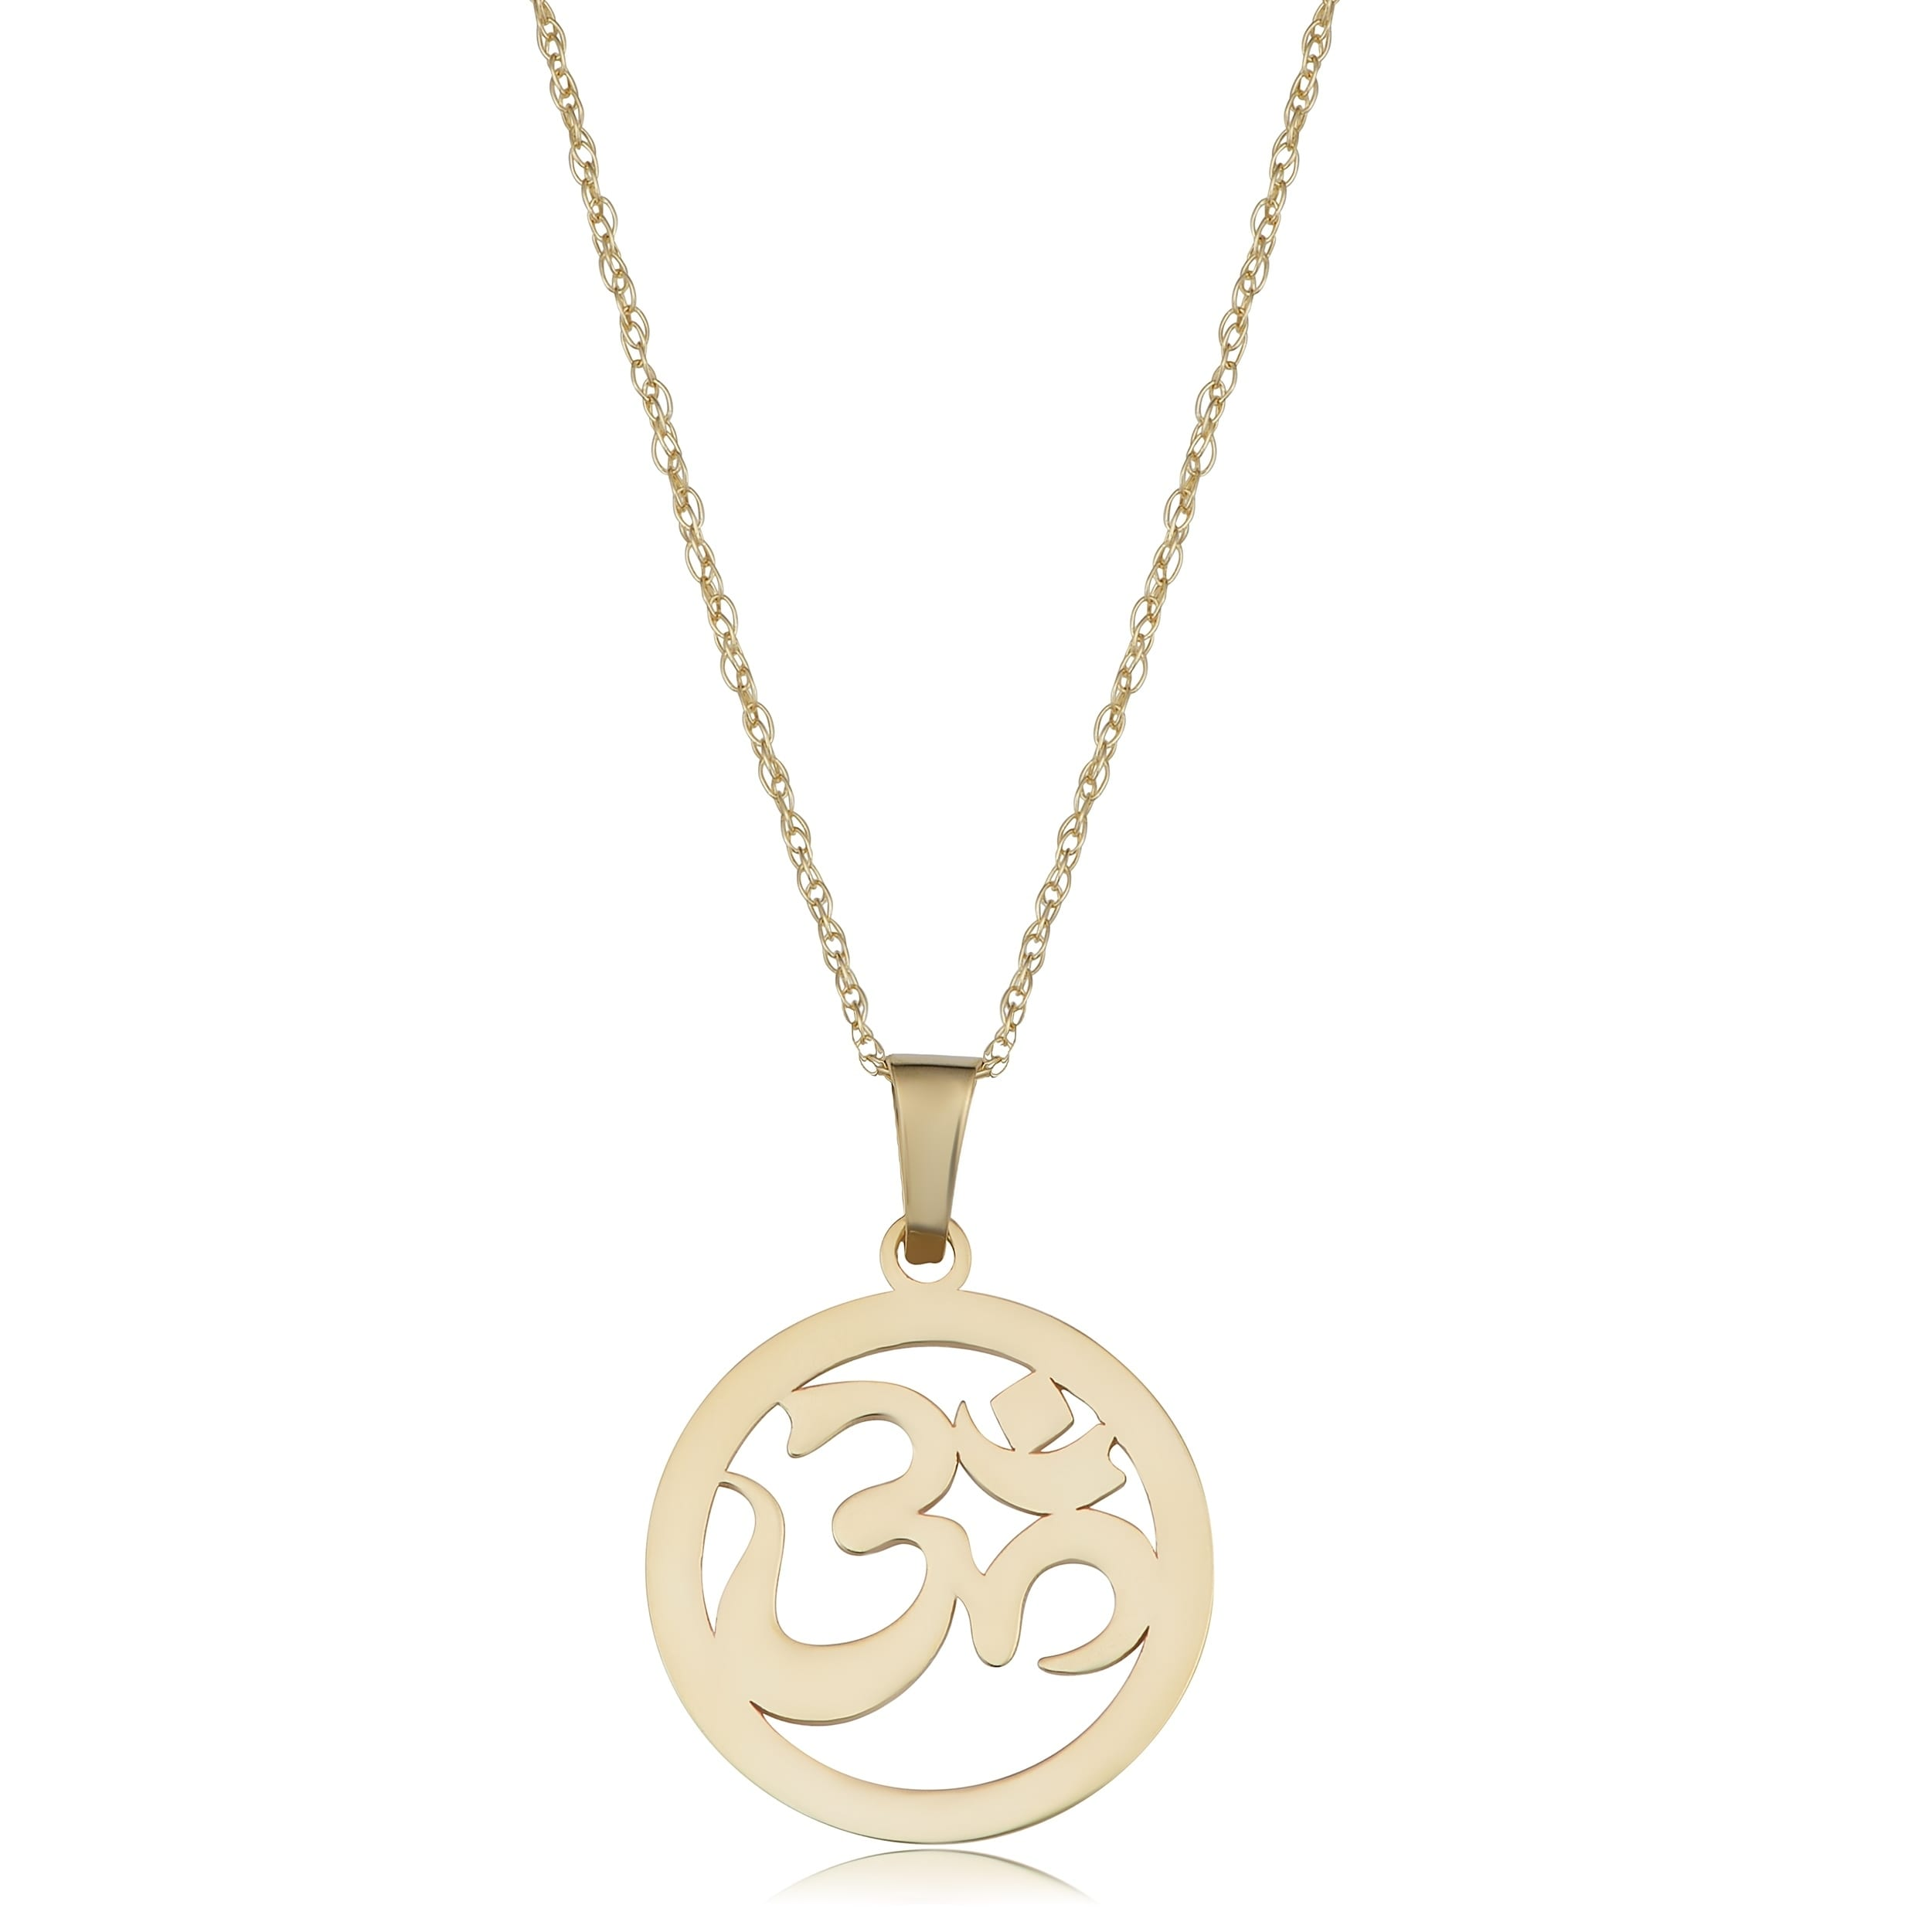 Fremada 14k Yellow Gold Om Aum Ohm Pendant Necklace 18 Inches